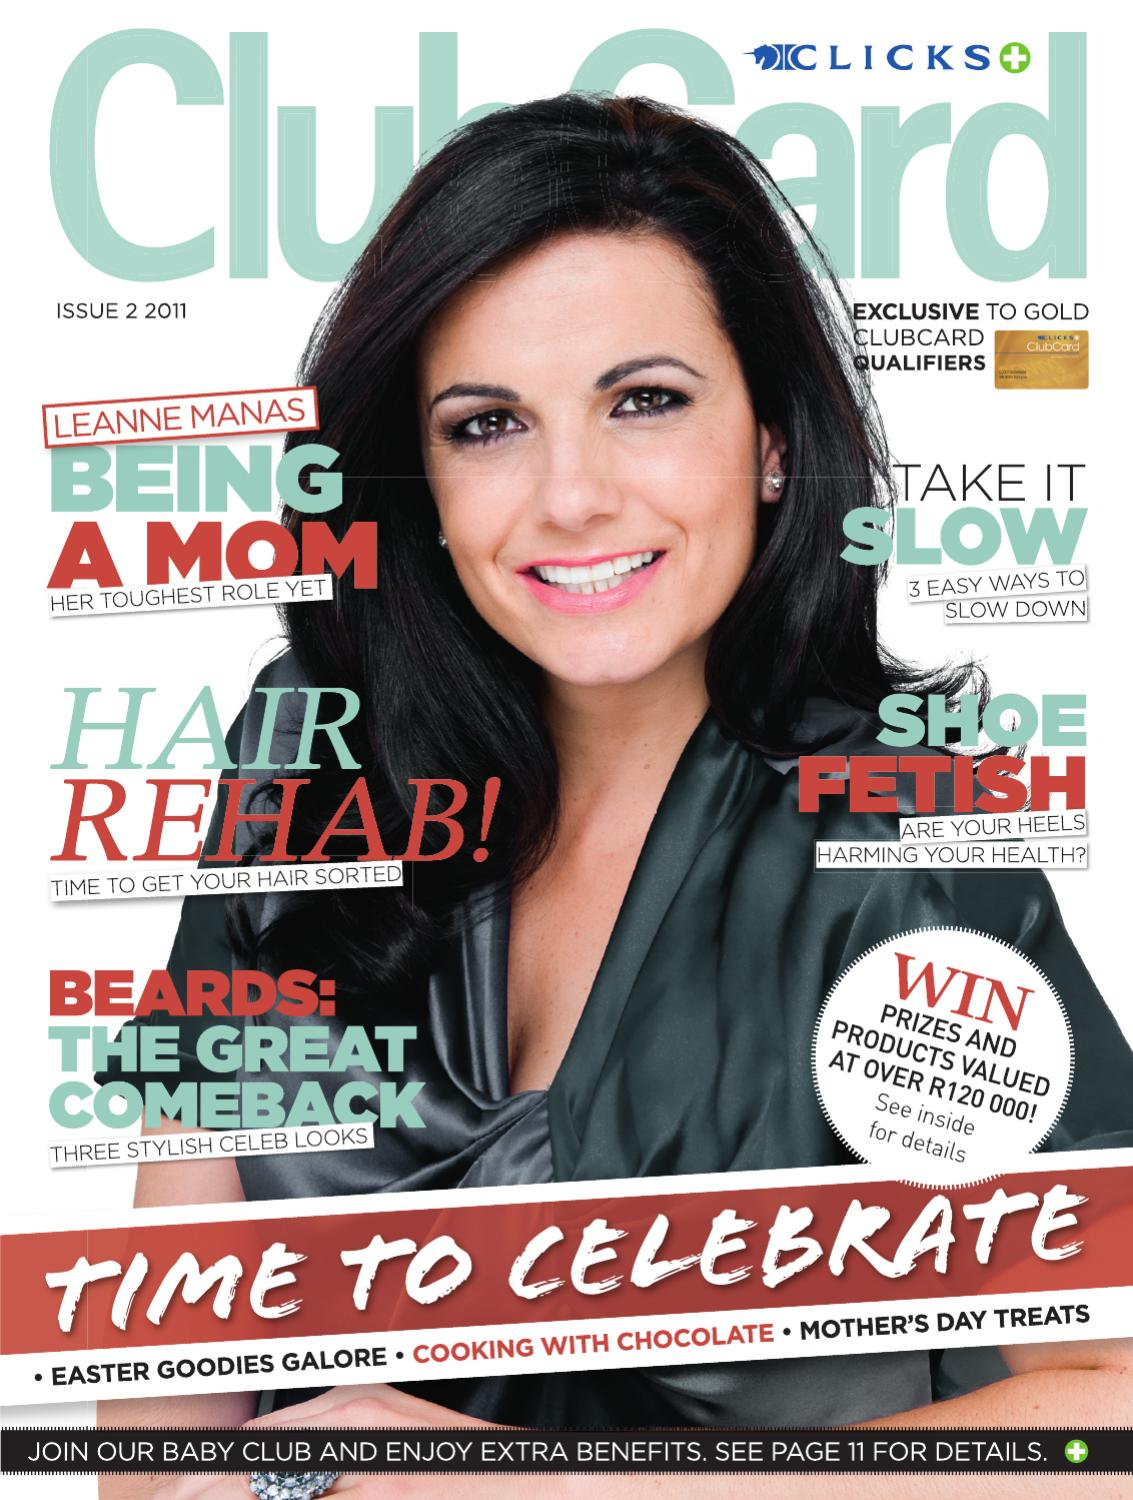 Clicks Clubcard Digital Test By The Publishing Partnership Issuu